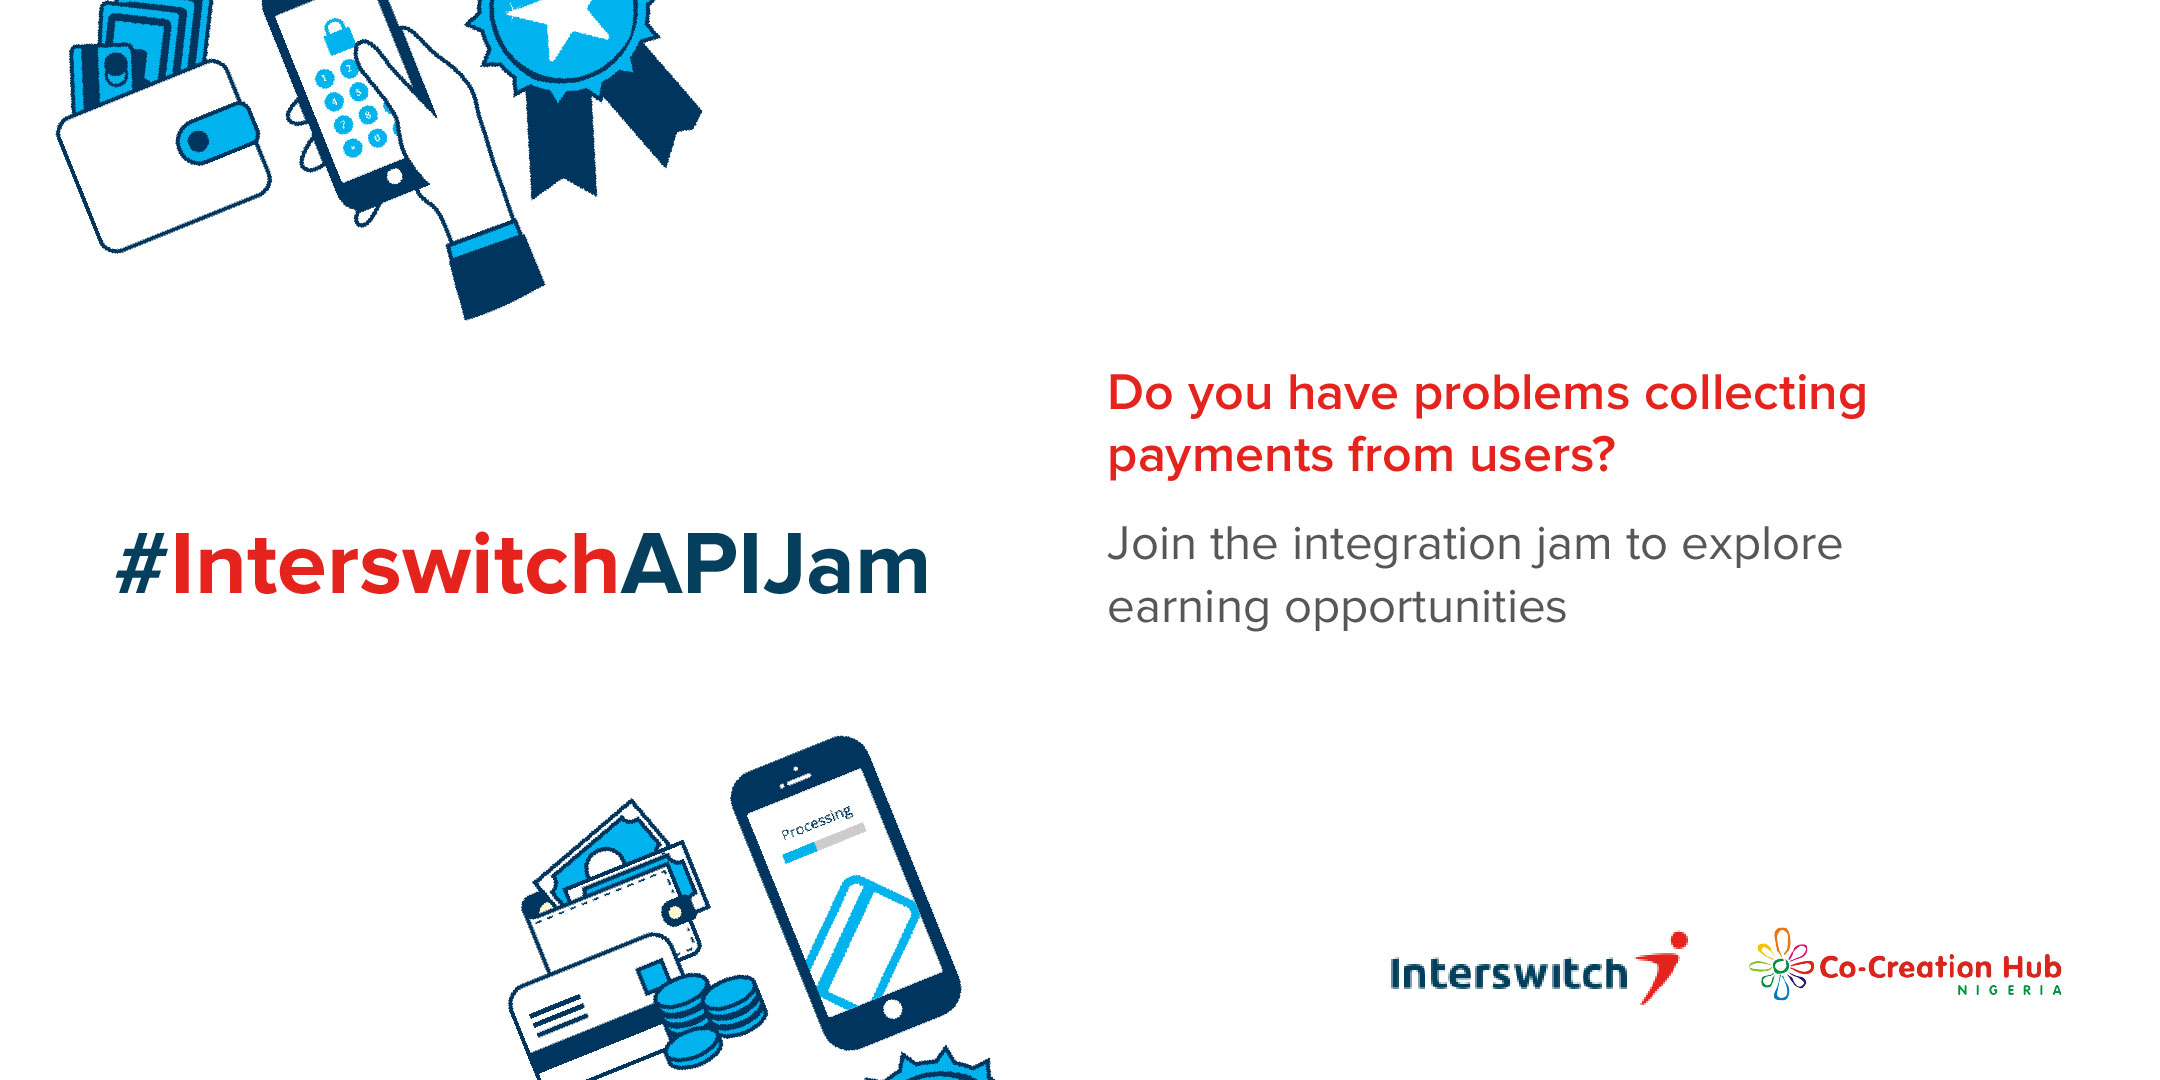 CcHub and Interswitch are hosting an API Integration Jam for developers in Lagos this October